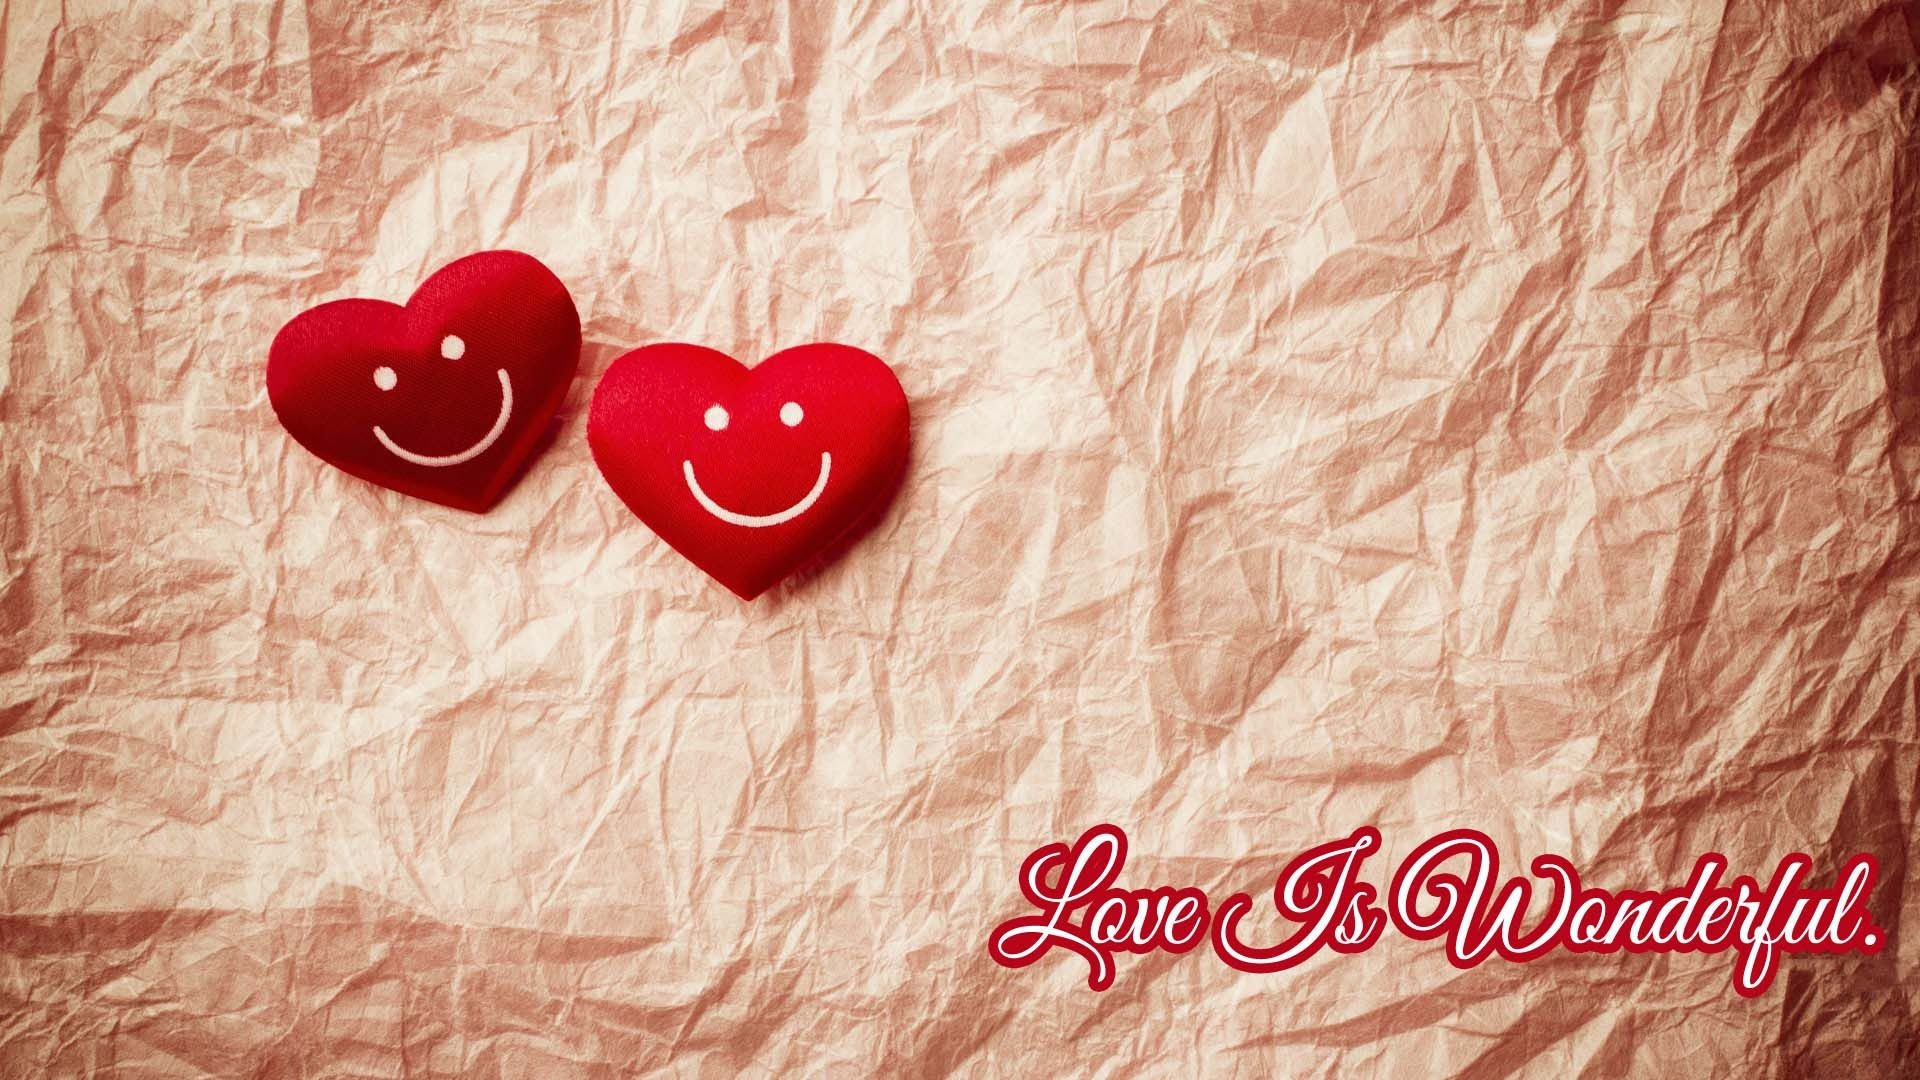 Cute I Love You | HD Love Wallpaper Free Download …